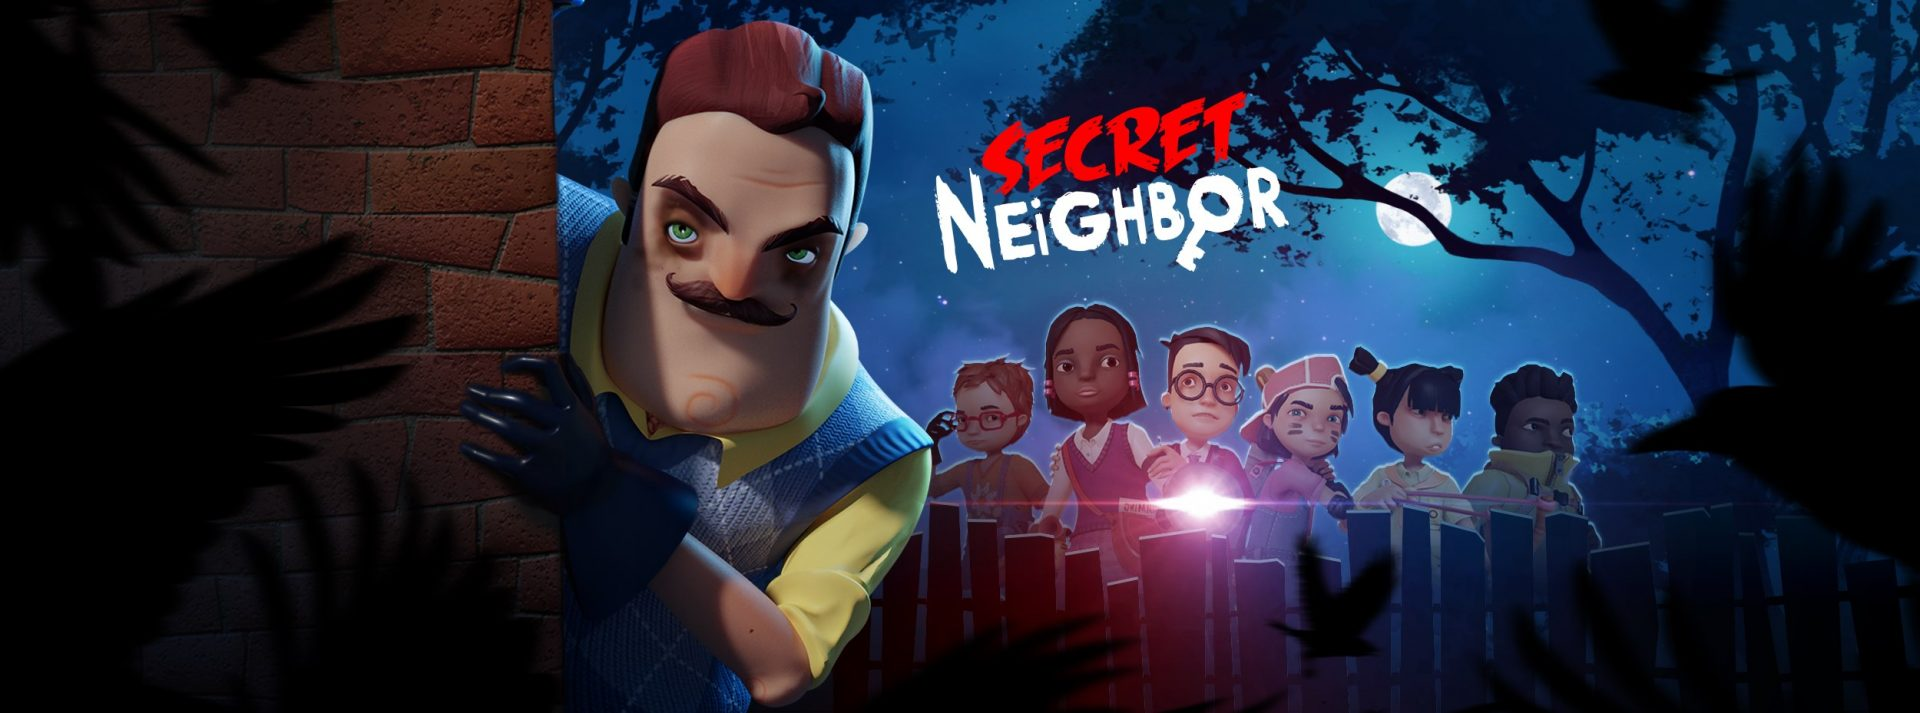 TinyBuild / Secret Neighbor / Facebook